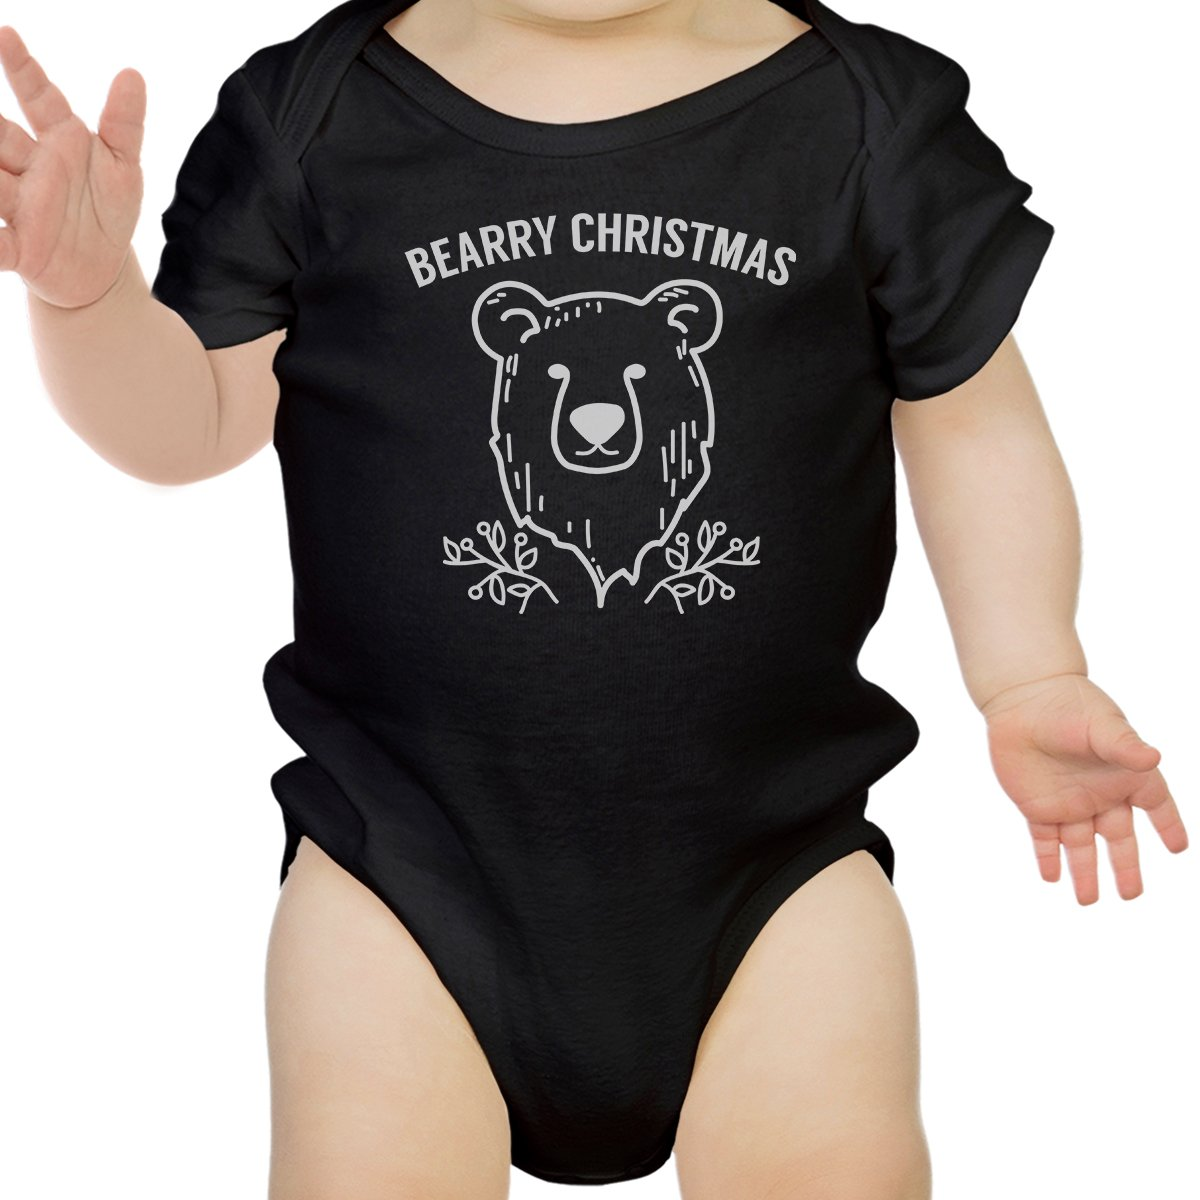 365 Printing Cute Baby Onesie Christmas Theme Baby Graphic T-Shirt for Holidays